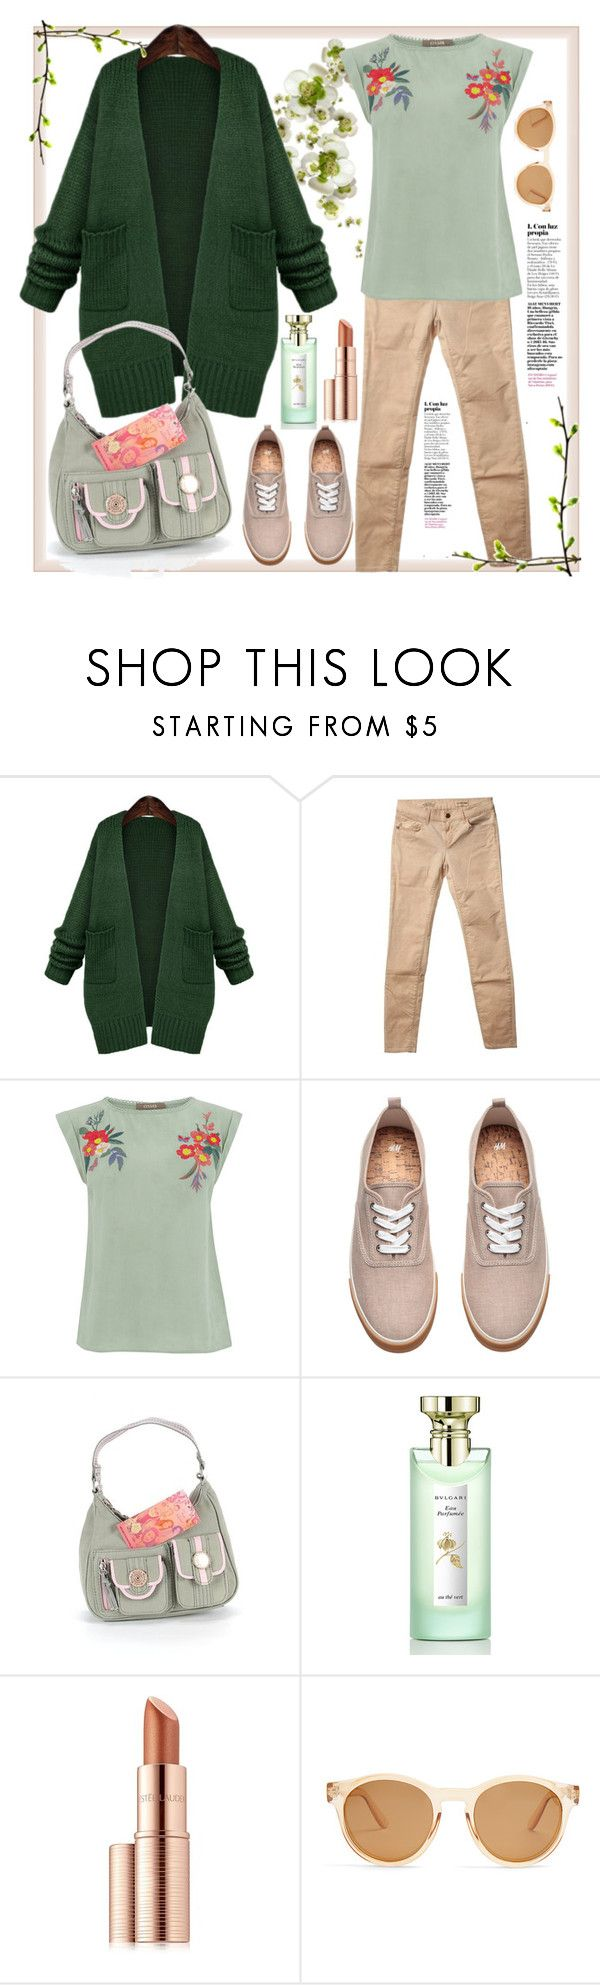 """Green & brown"" by natalyapril1976 on Polyvore featuring WithChic, Rich & Royal, Mudd, Bulgari, Estée Lauder and Le Specs"